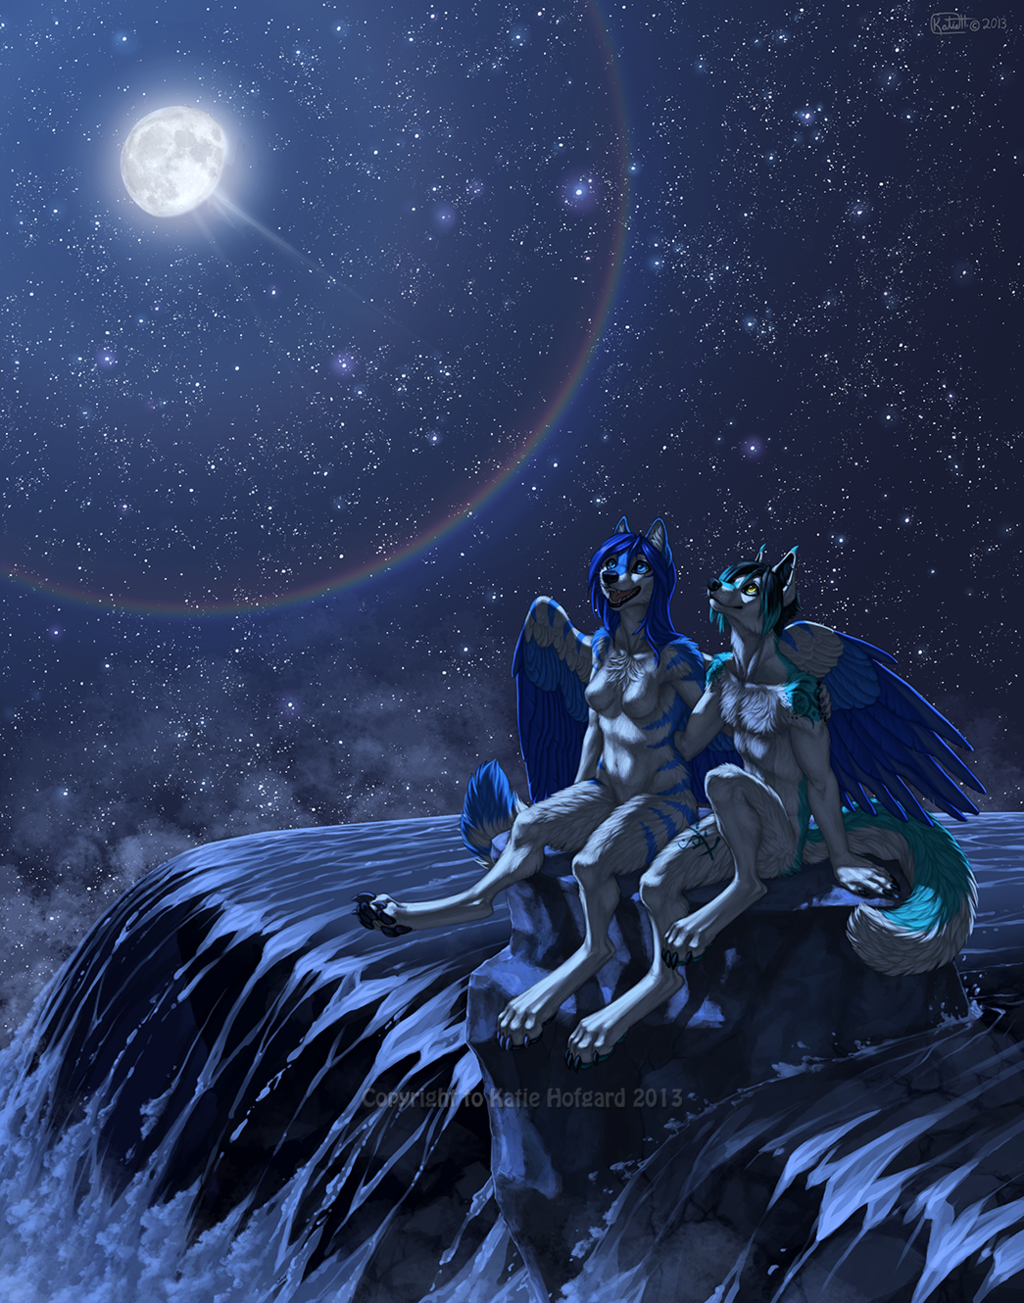 Casting Beyond The Moon